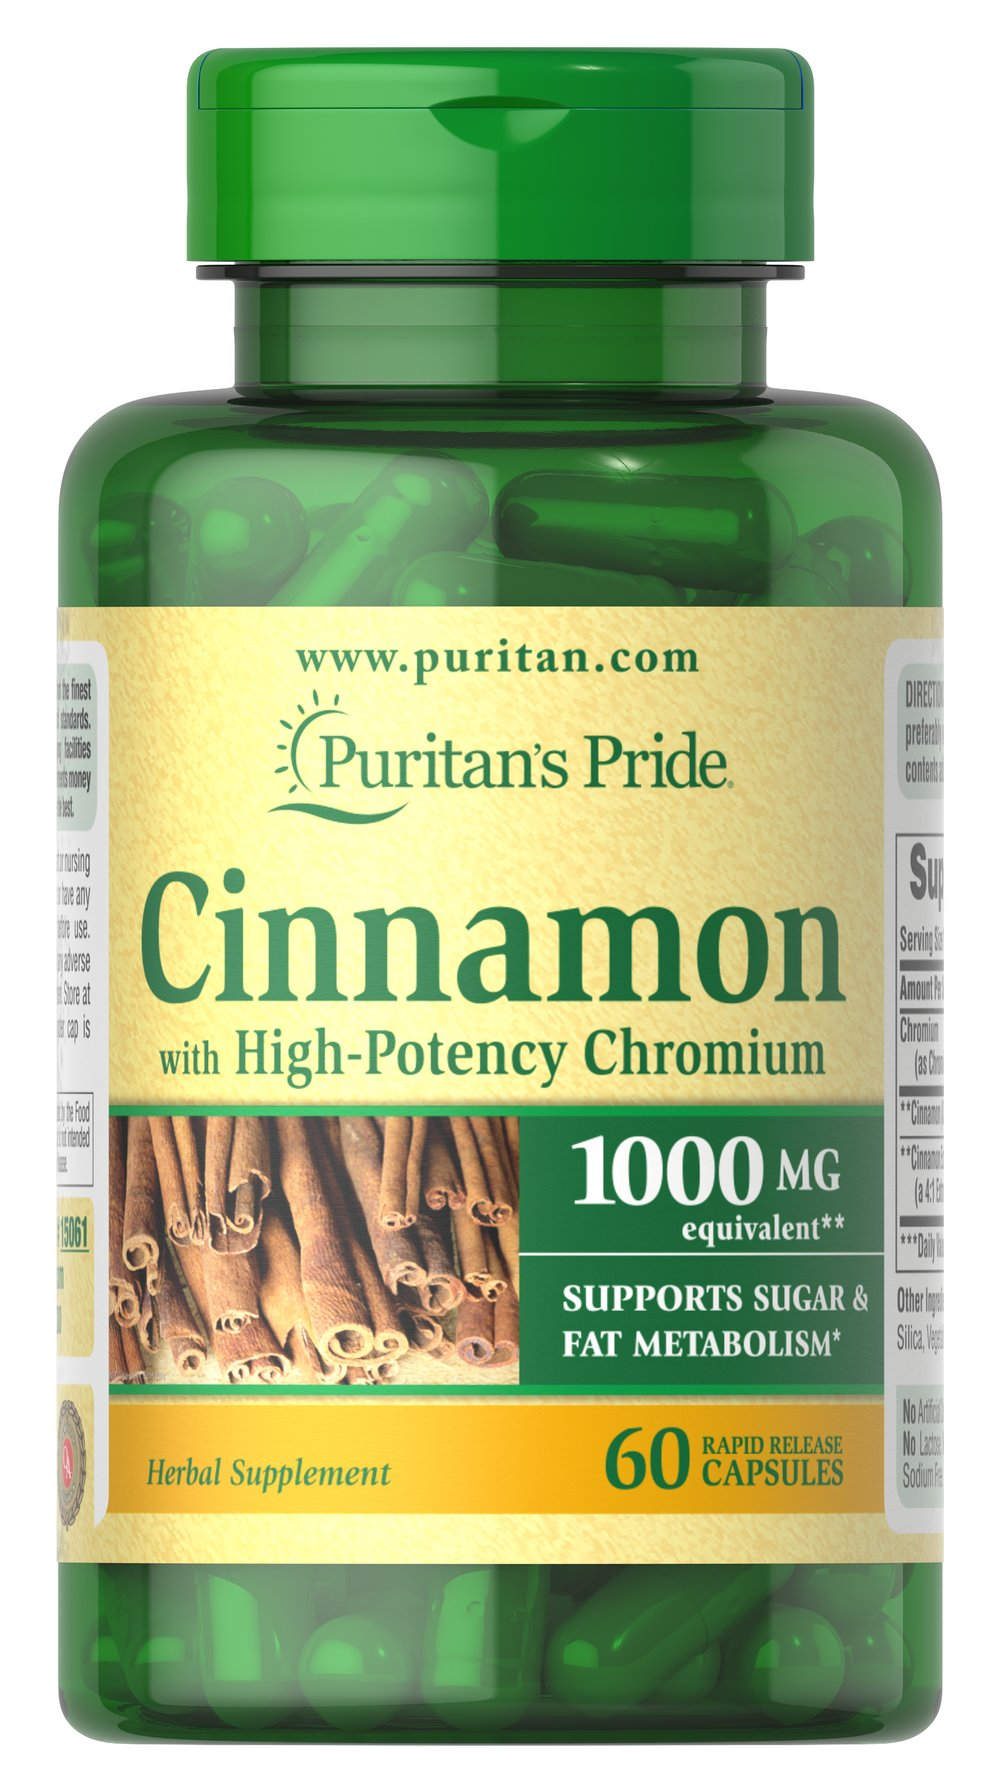 Cinnamon Complex with High Potency Chromium  60 Capsules 1000 mg $14.75